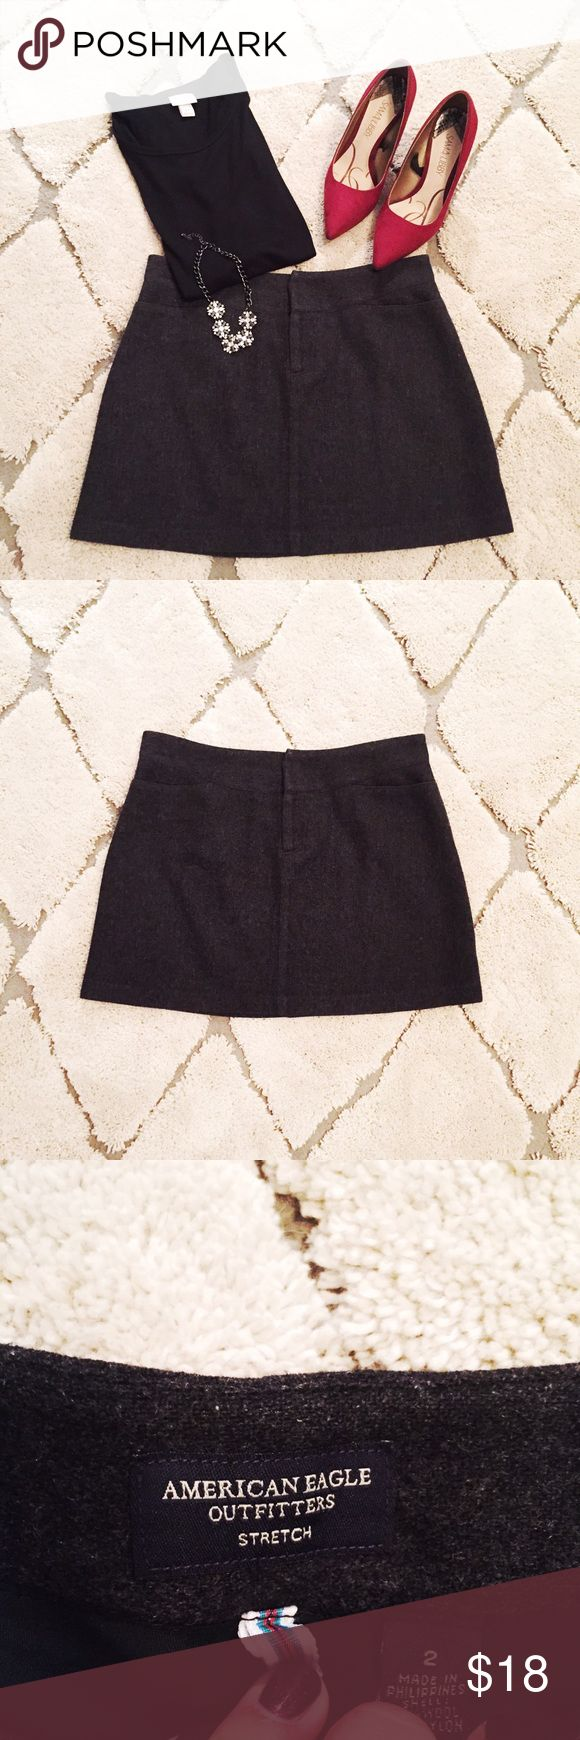 Dark grey wool American Eagle skirt. Size 2 Dark grey American Eagle skirt, size 2. This skirt is such a style staple. Pair with heels and a nice top for work, then slip into some boots for after work happy hour. EUC condition, no marks, tears or stains. Just dry cleaned. Reasonable offers welcome 😃 choker available in separate listing American Eagle Outfitters Skirts